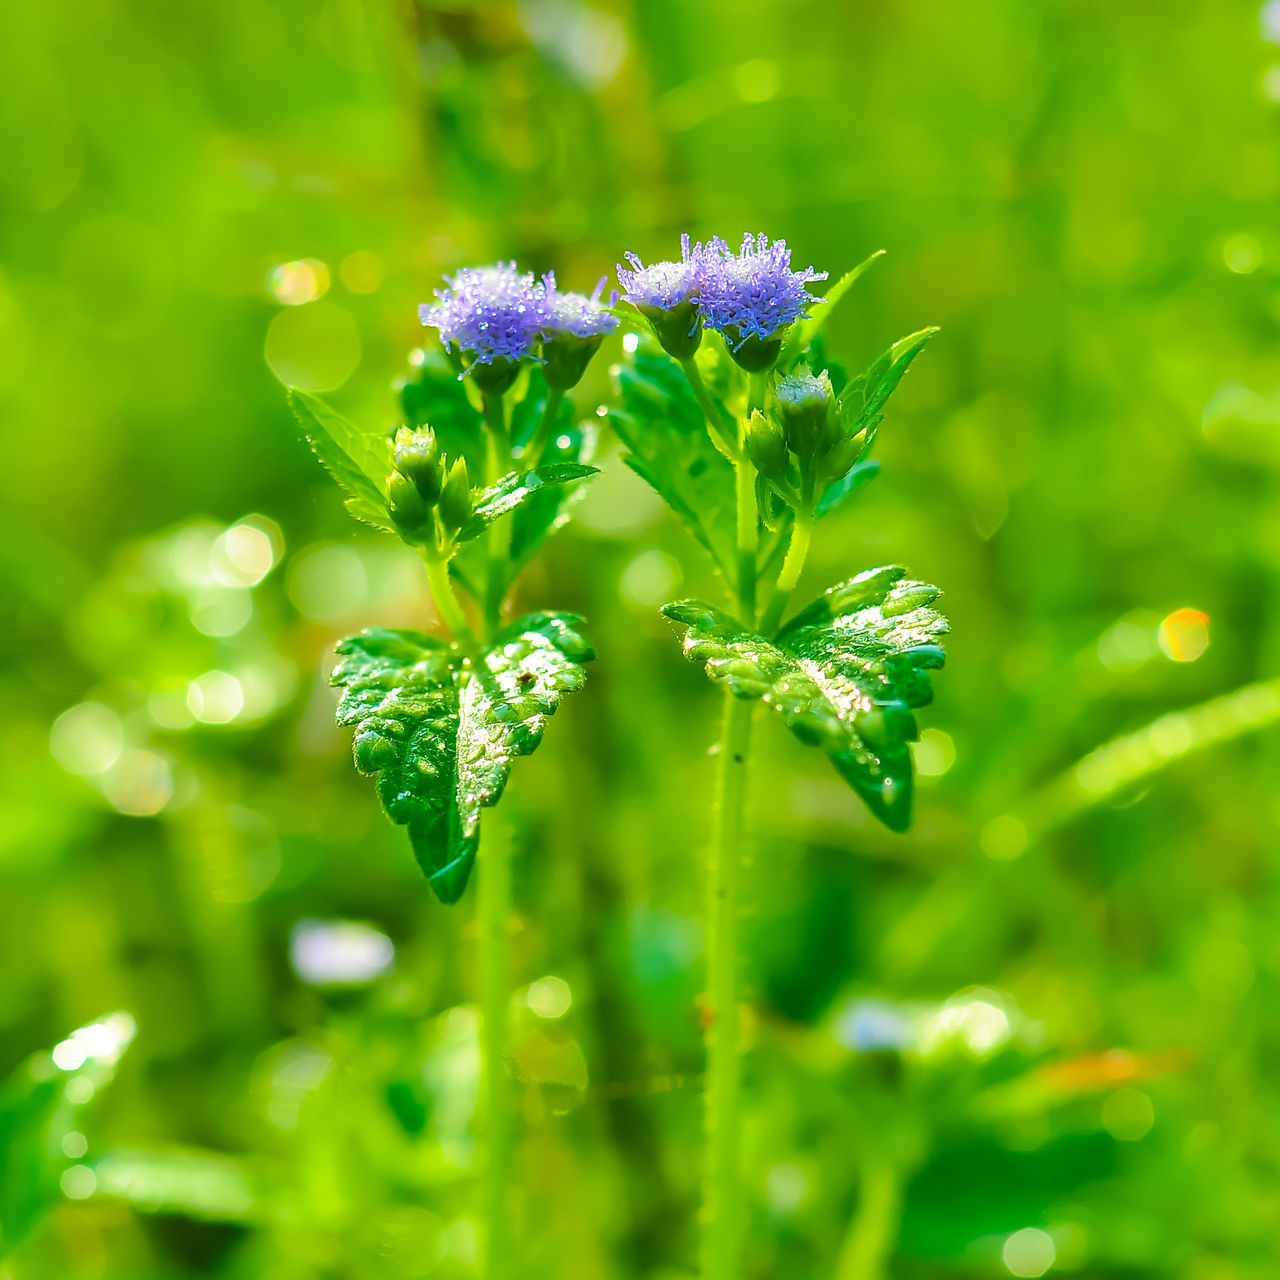 flower, green color, nature, beauty in nature, growth, plant, fragility, no people, day, focus on foreground, outdoors, freshness, grass, close-up, flower head